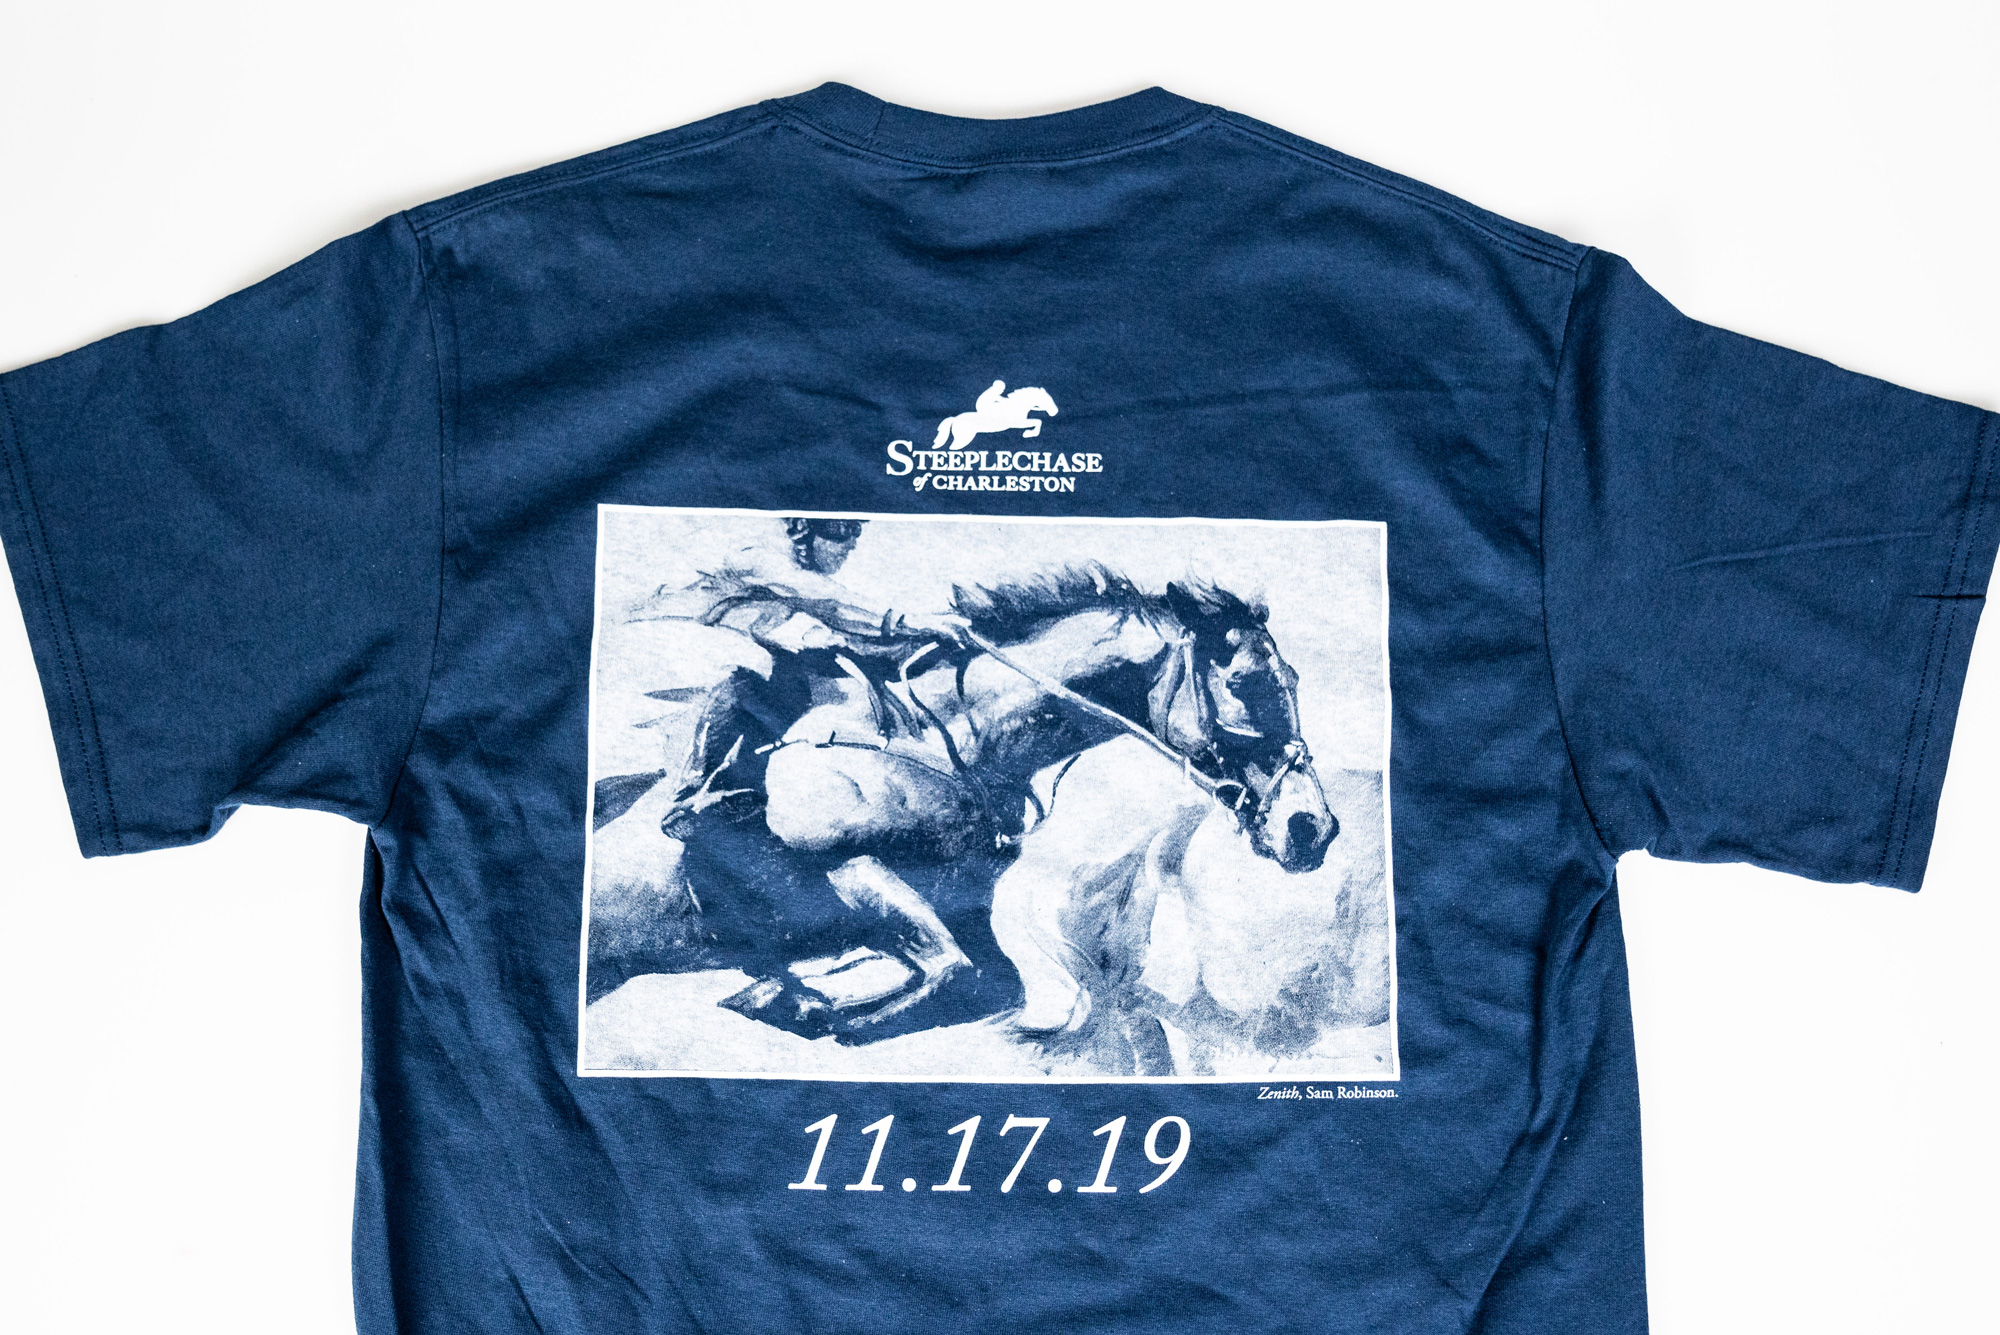 Steeplechase of Charleston - Shirt